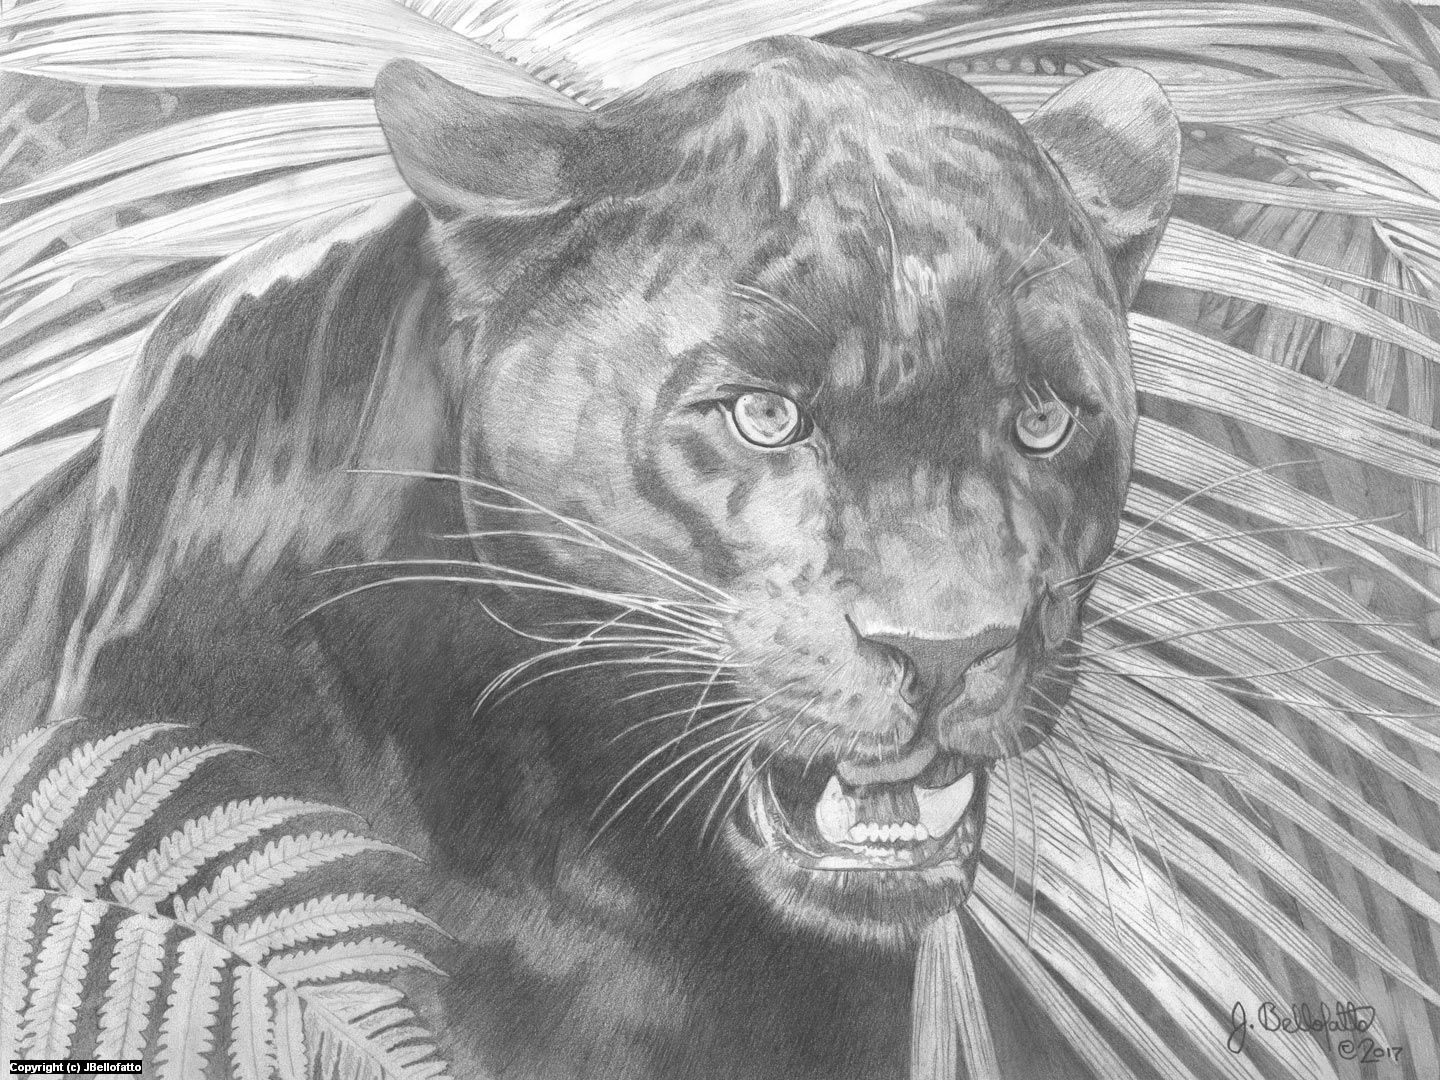 drawing of a black panther black panther artwork by joseph bellofatto c2017 black drawing of a panther